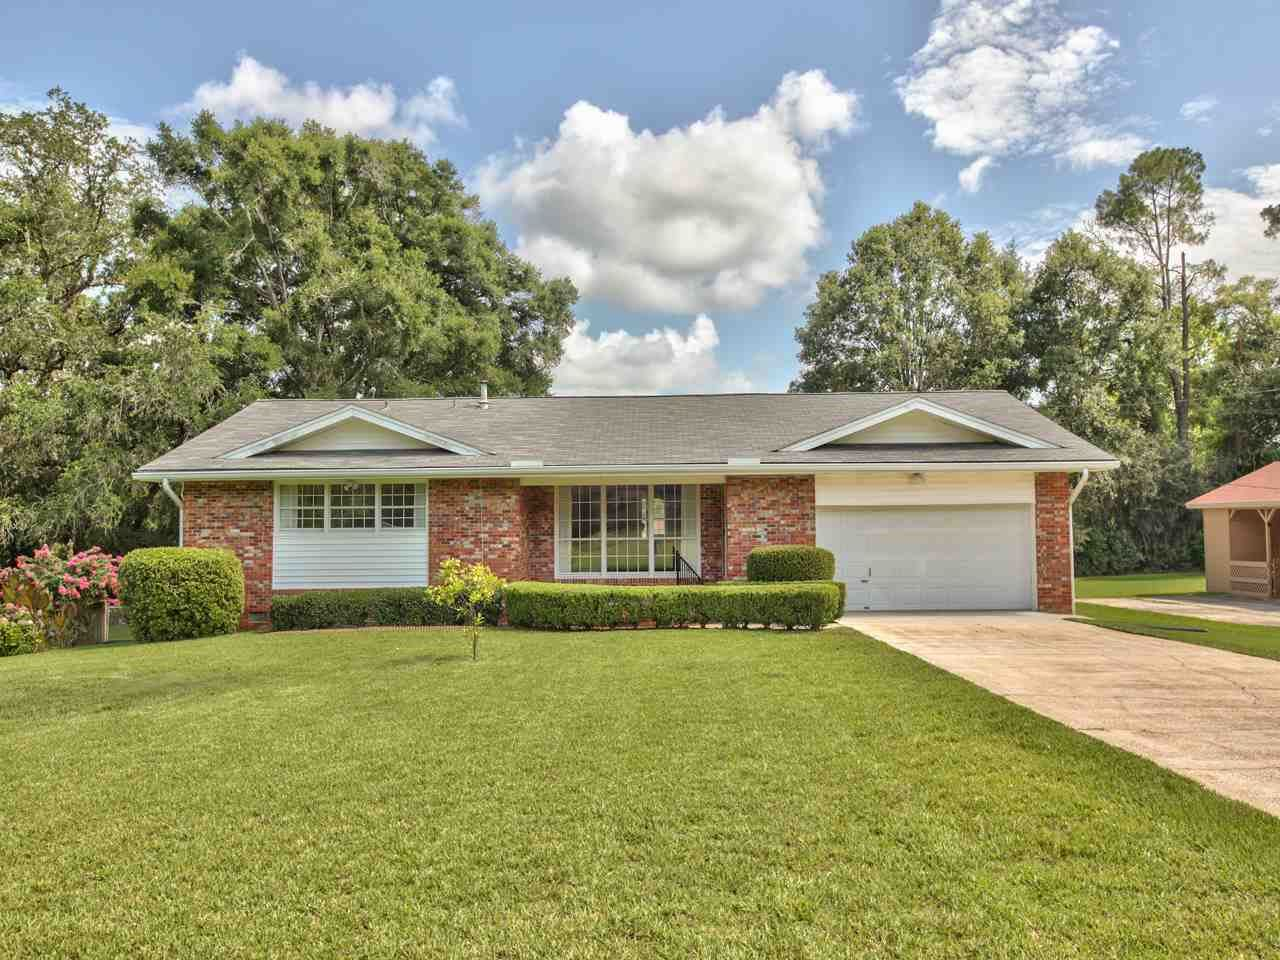 Photo of 4920 Vernon Road, TALLAHASSEE, FL 32317 (MLS # 320757)